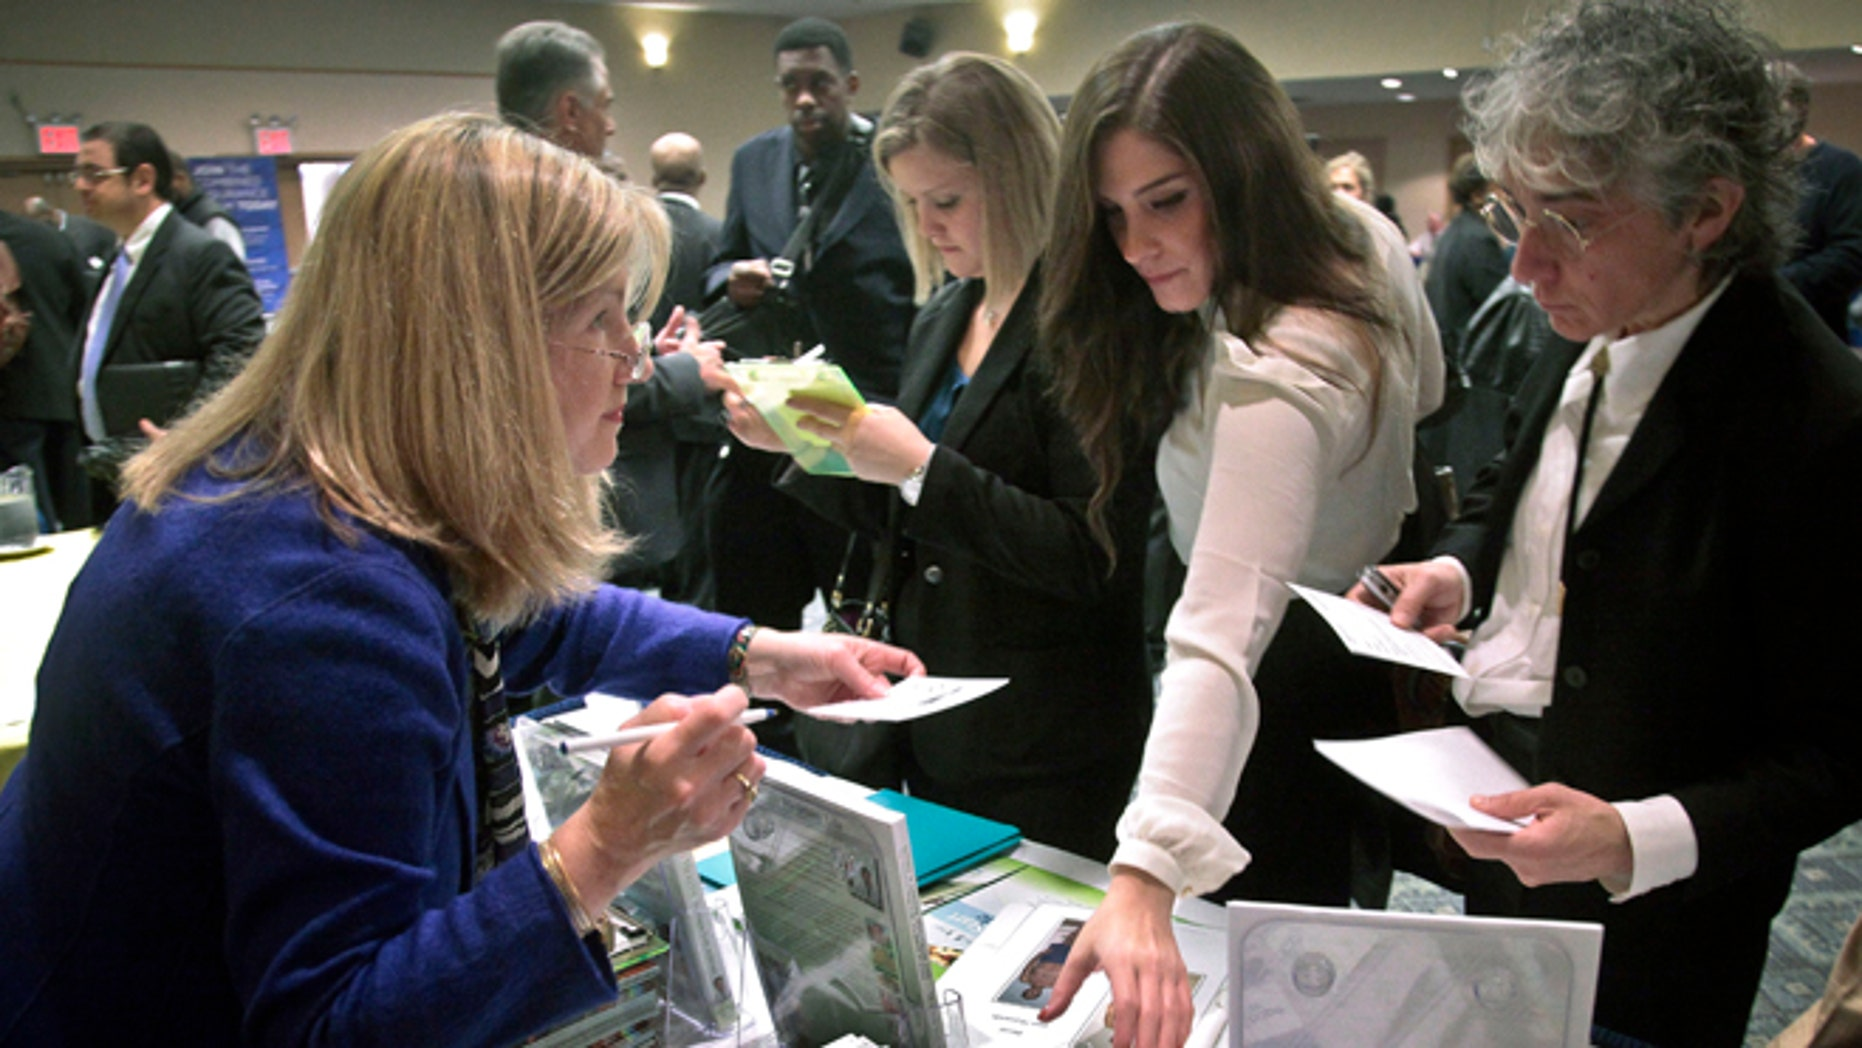 Oct. 24, 2012: Patricia Mazza, left, meets job seekers, including recent college grads Ashley Deyo, 22, second from left, and Chyna Dama, 23, second from right, during a National Career Fairs' job fair in New York.